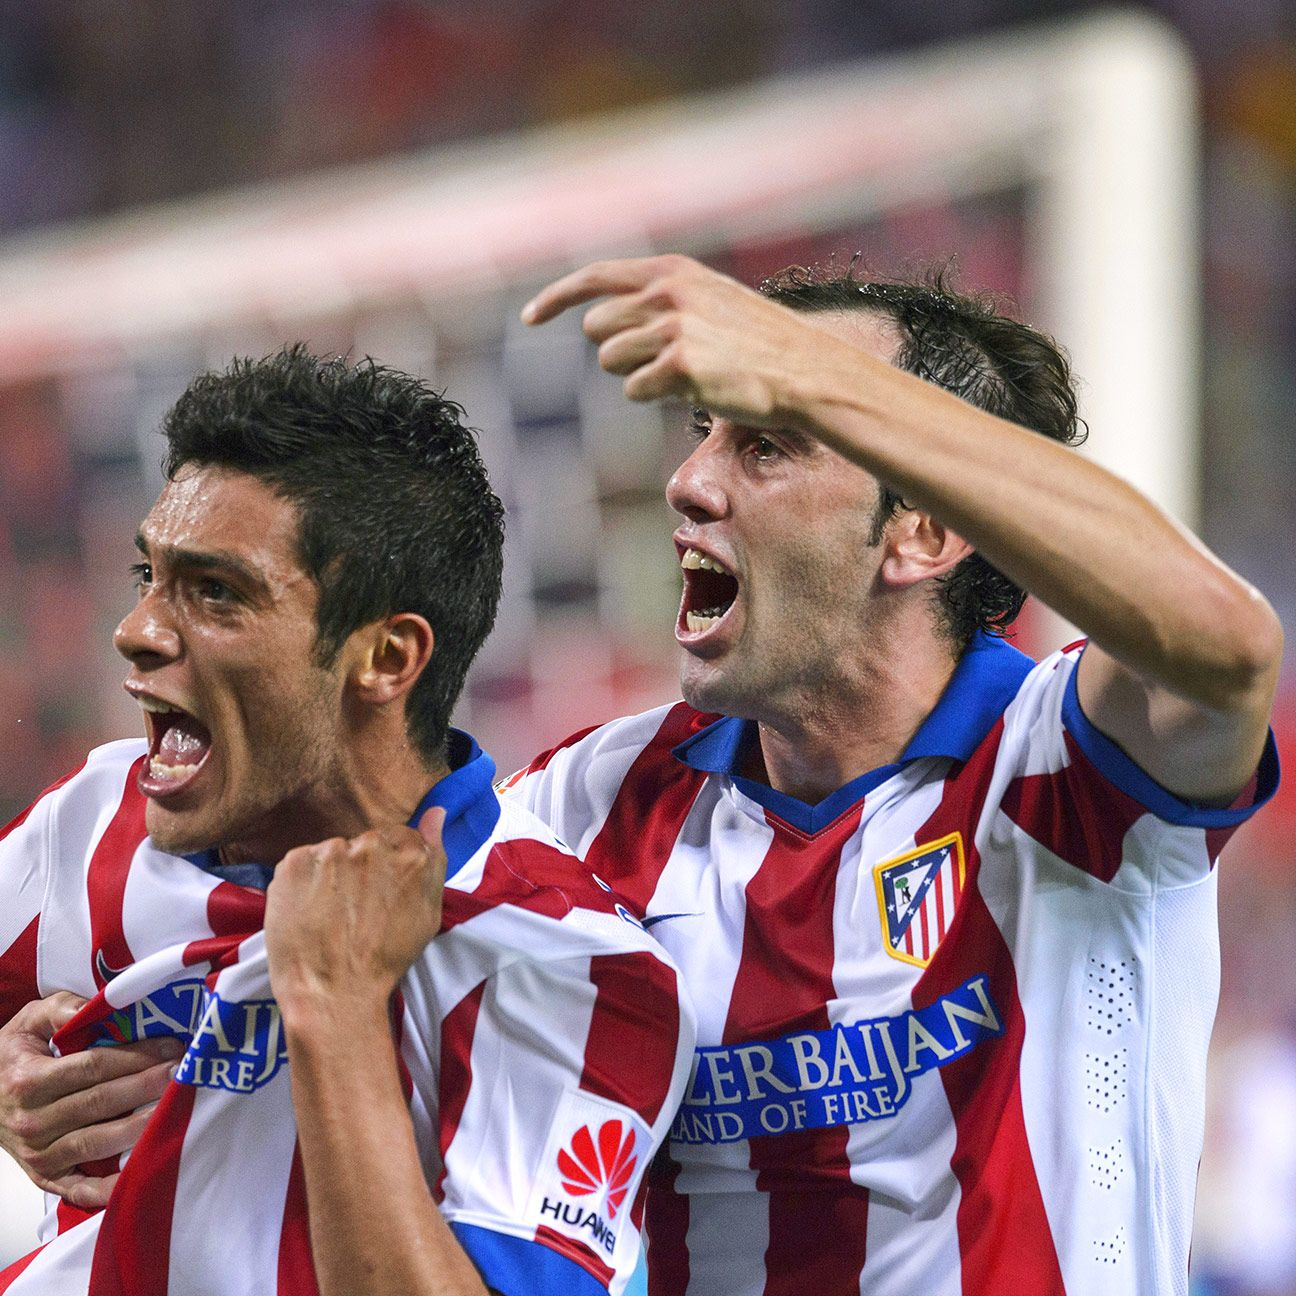 The relief and joy on the face of Raul Jimenez was palpable after the Mexican striker tallied his first goal for Atletico in Saturday's romp over Sevilla.